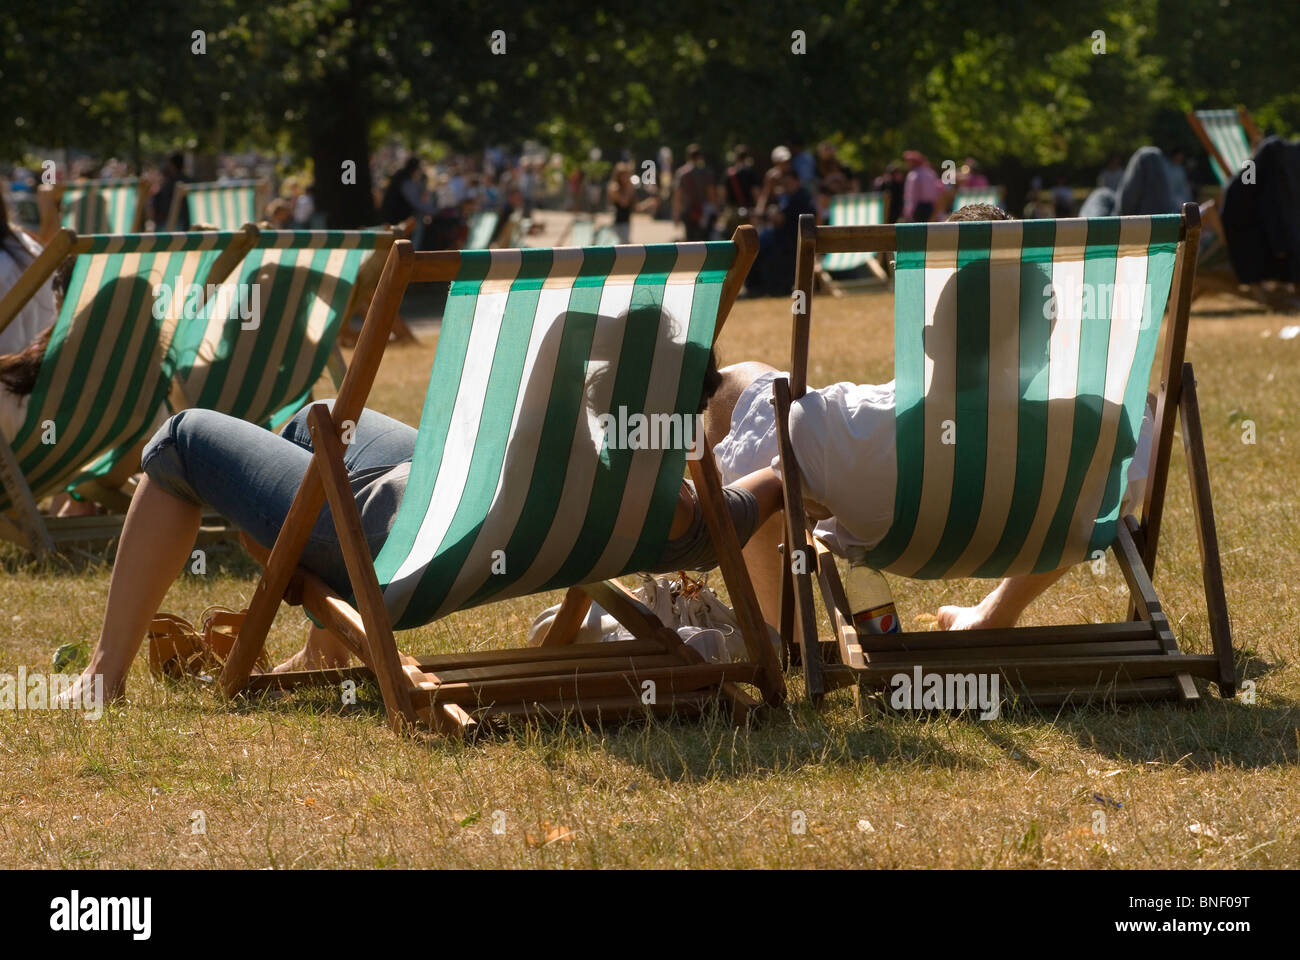 Heat wave hot weather couple deckchairs Hyde Park London Uk HOMER SYKES - Stock Image